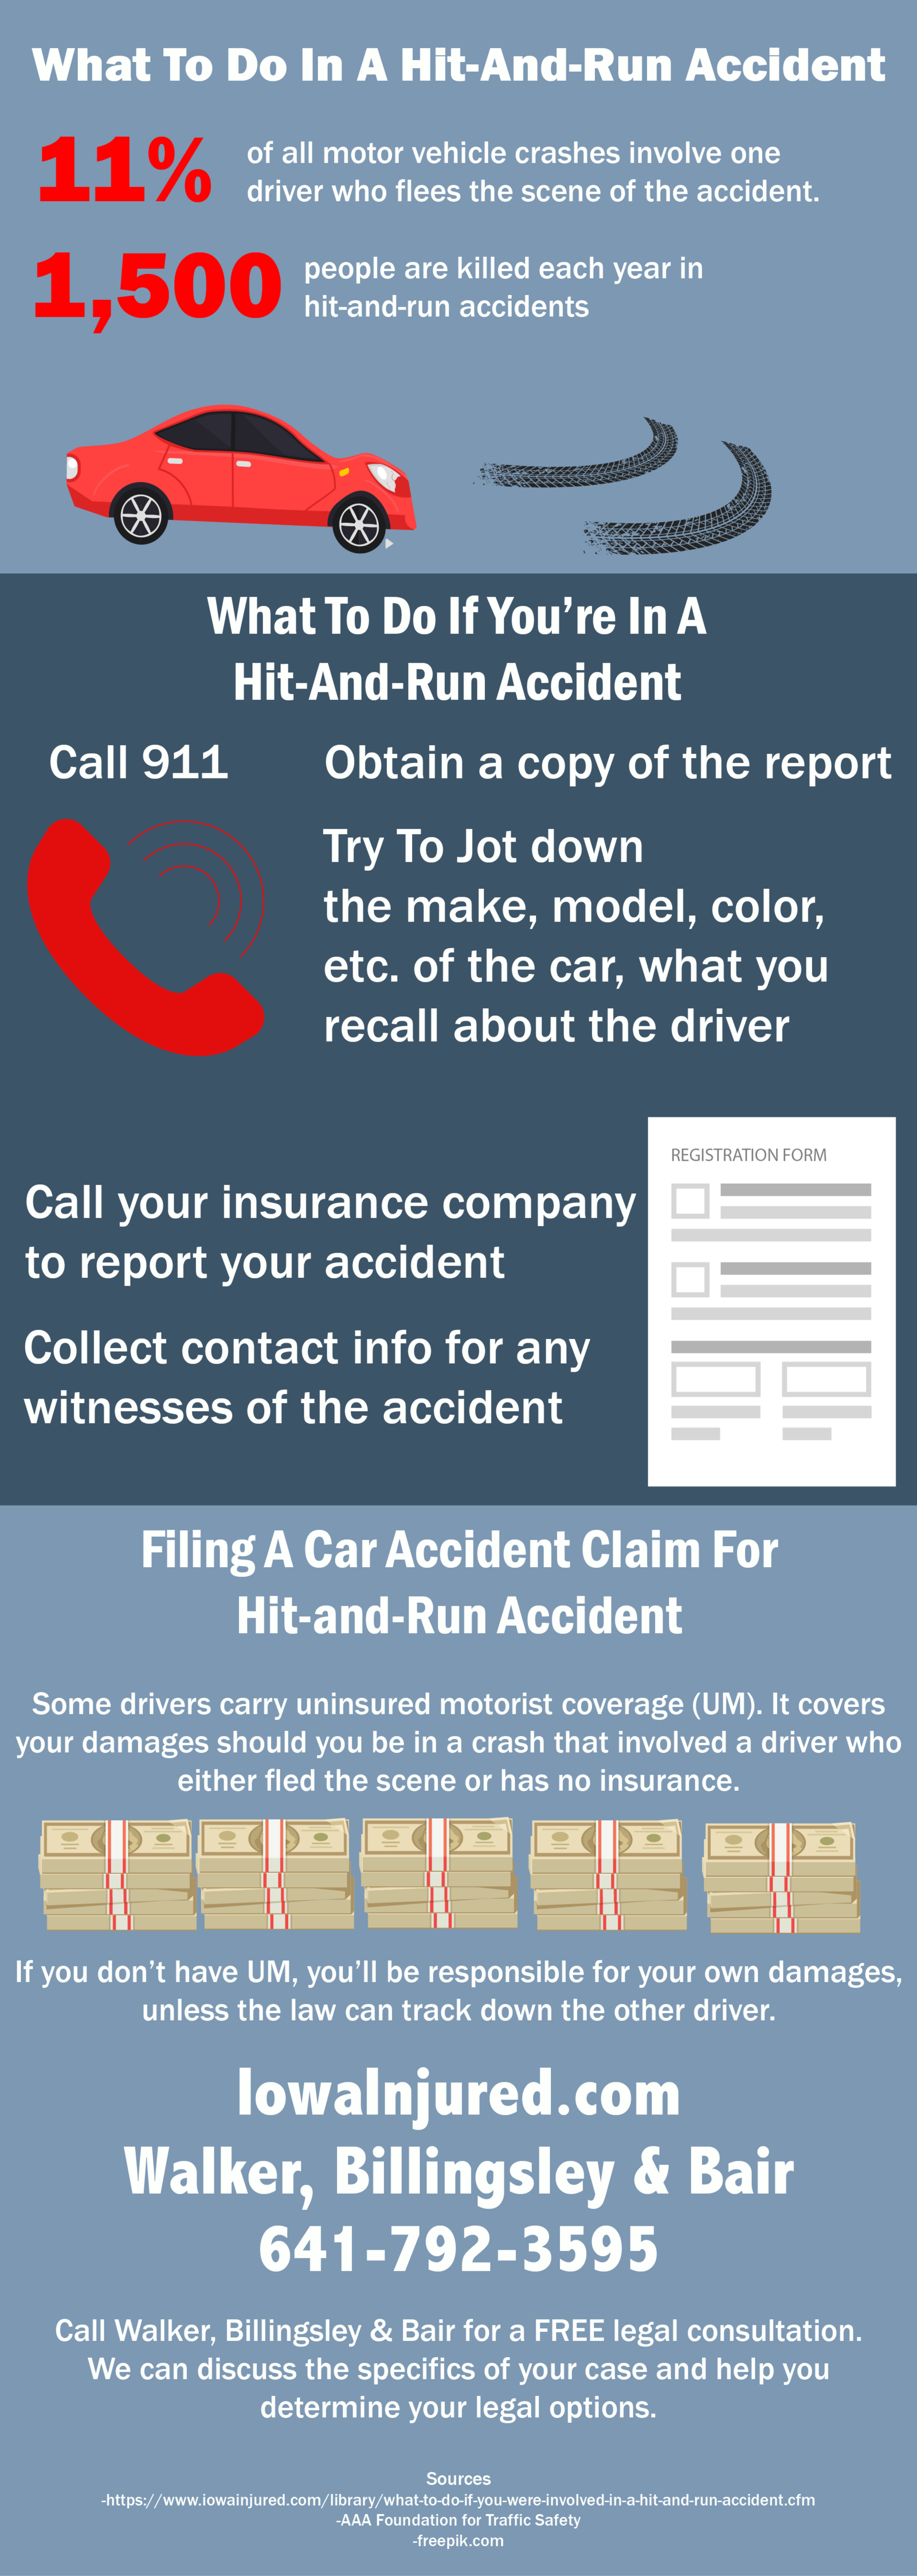 What to do in a hit and run accident iowa injured pedestrian injury